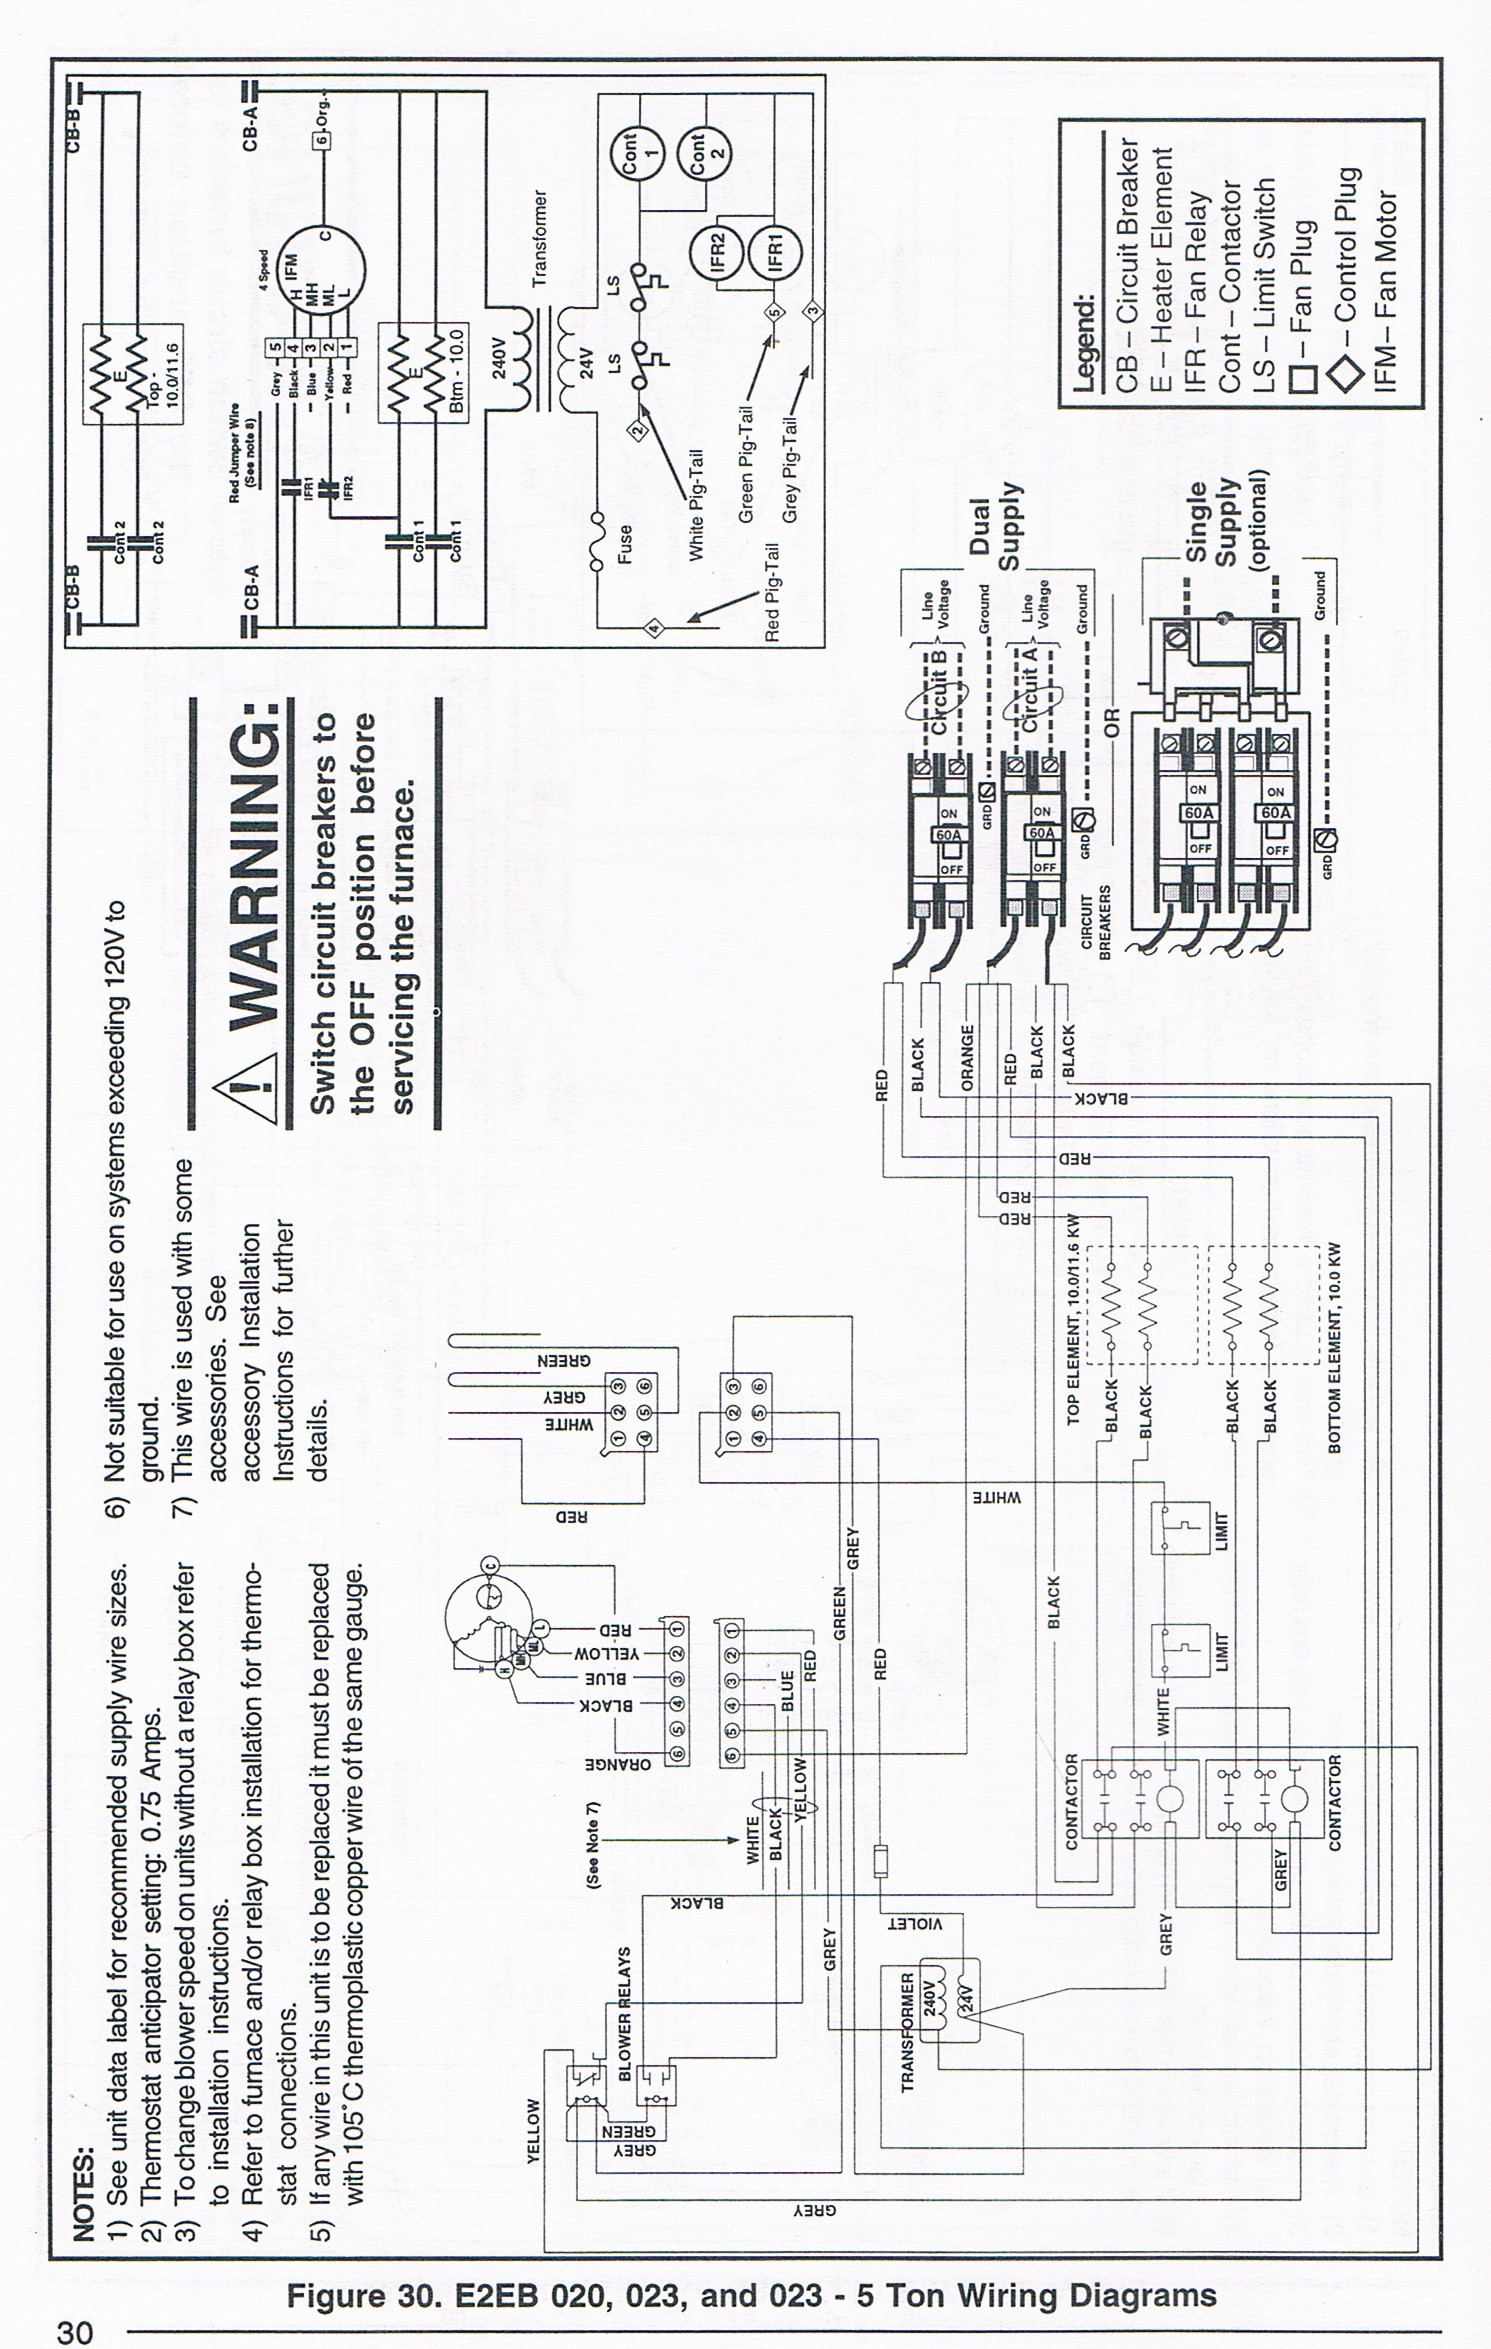 mobile home furnace wiring diagram pioneer deh 1100mp car stereo intertherm get free image about